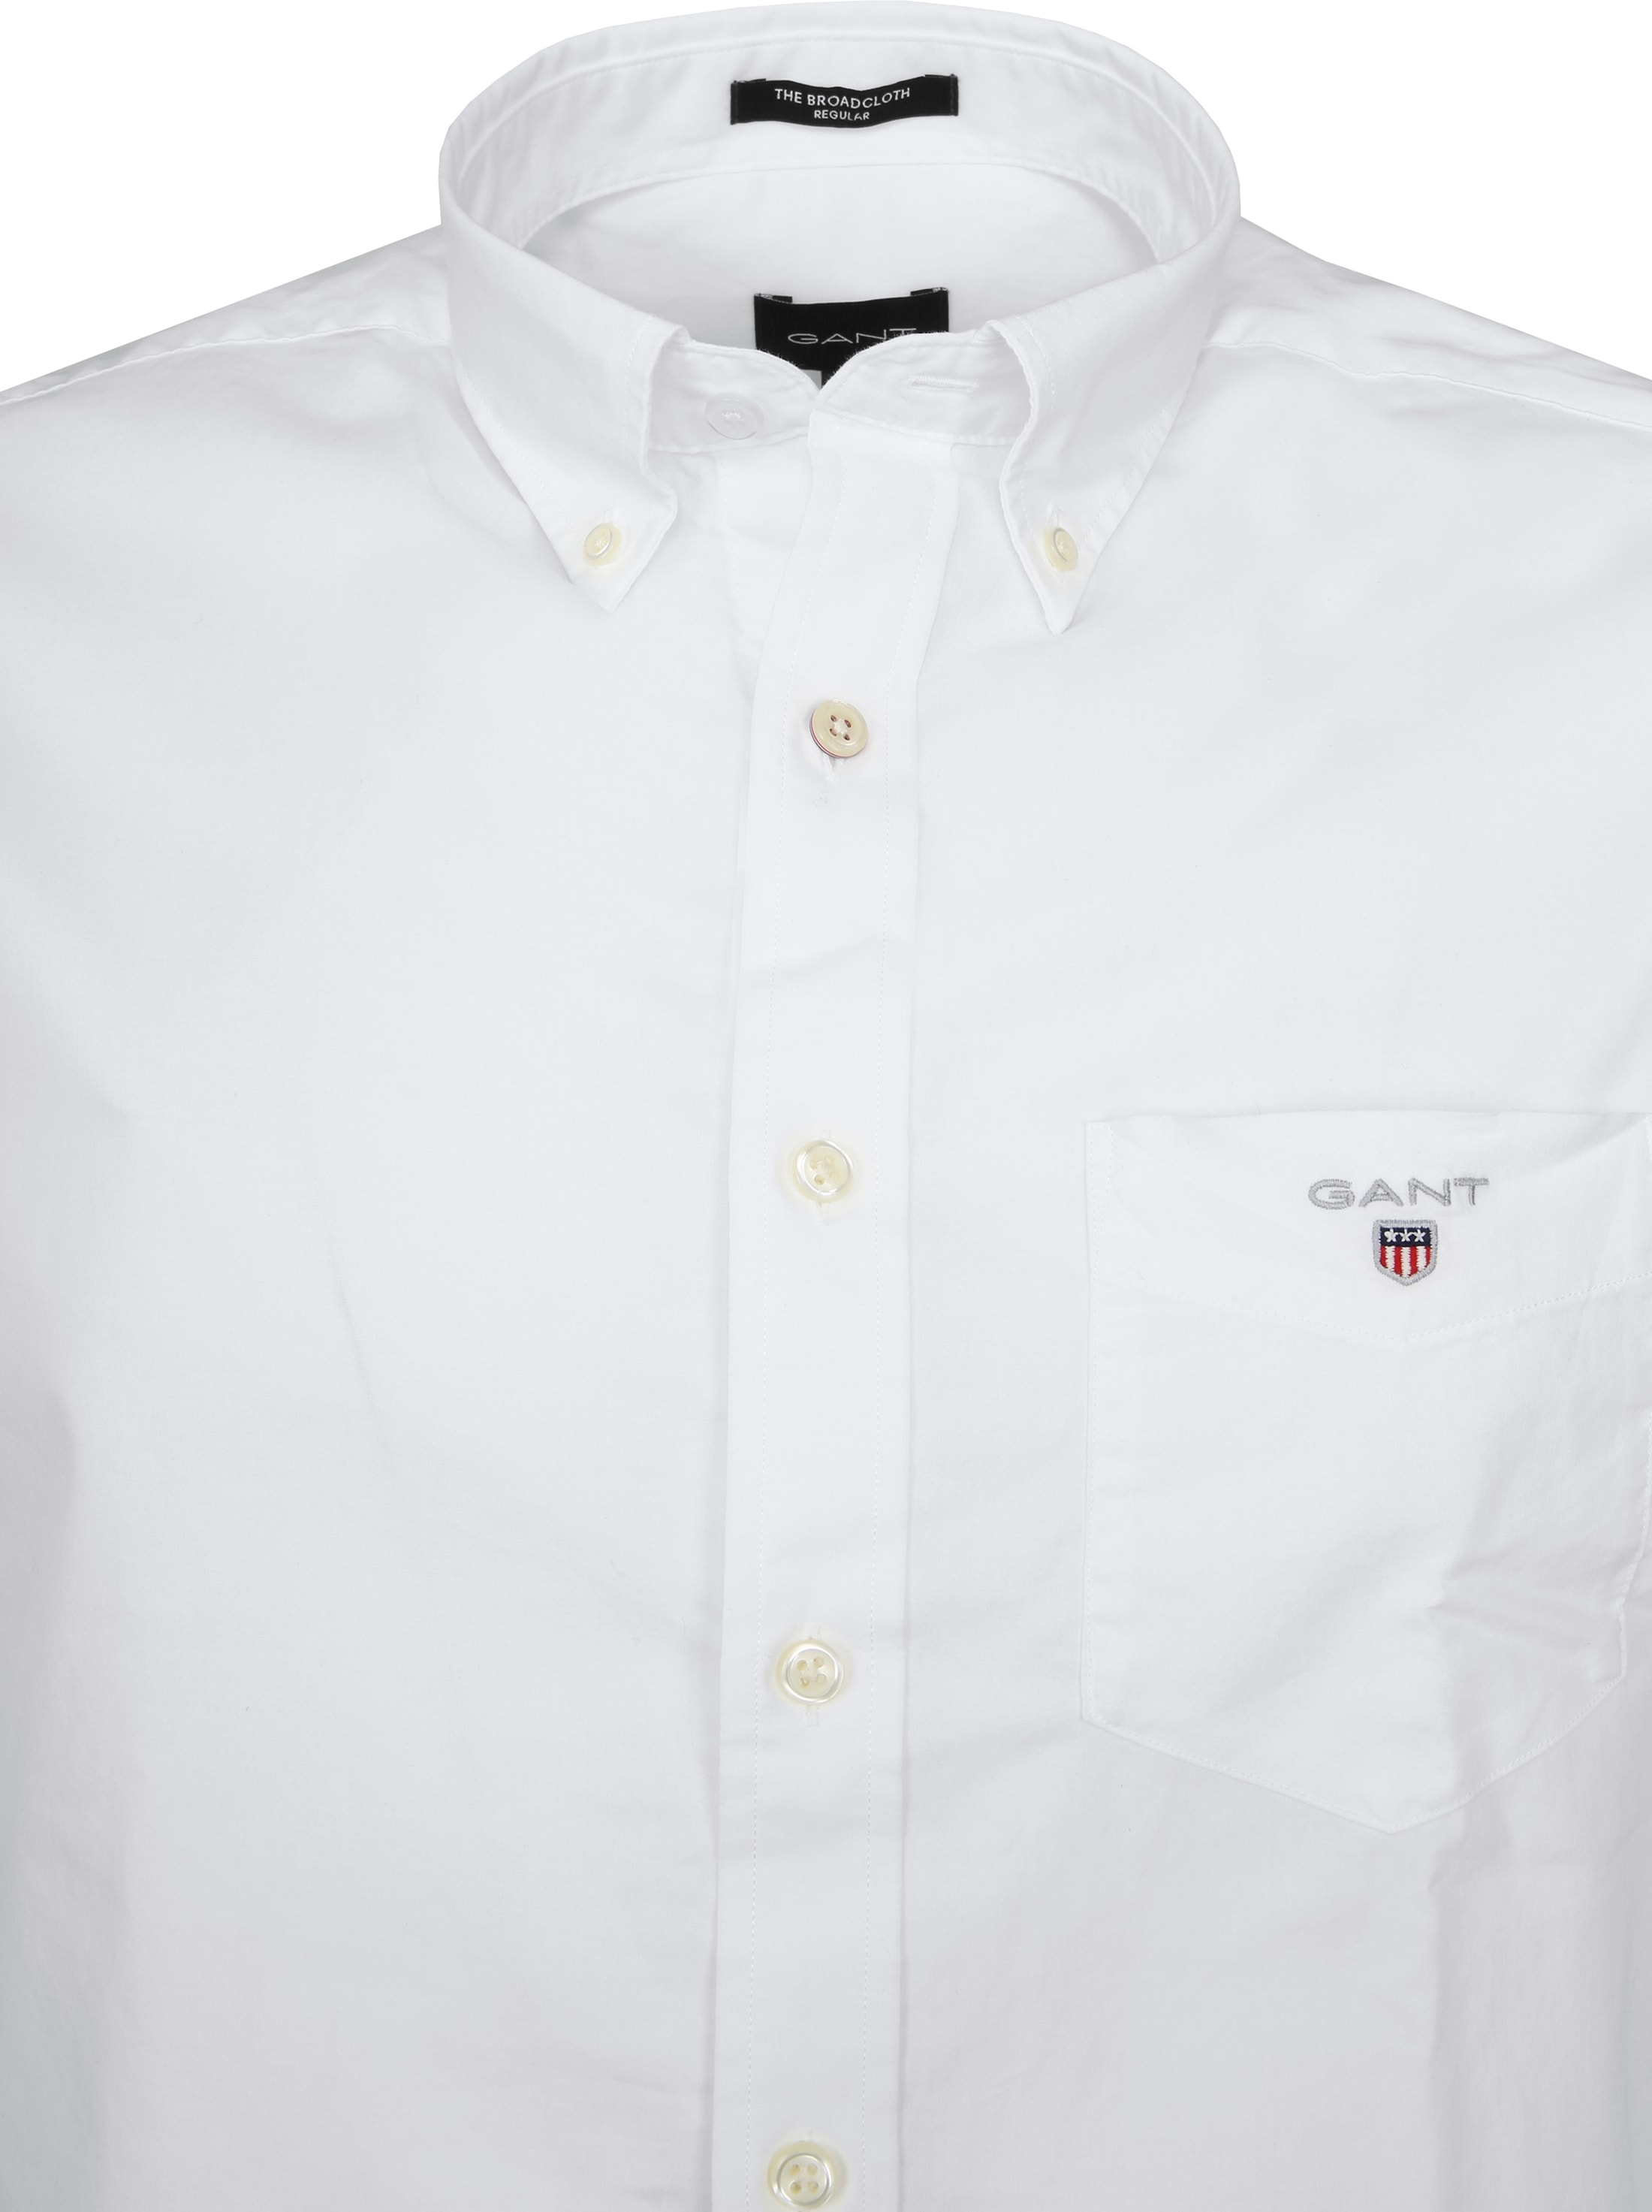 Gant Casual Overhemd Broadcloth Wit foto 2